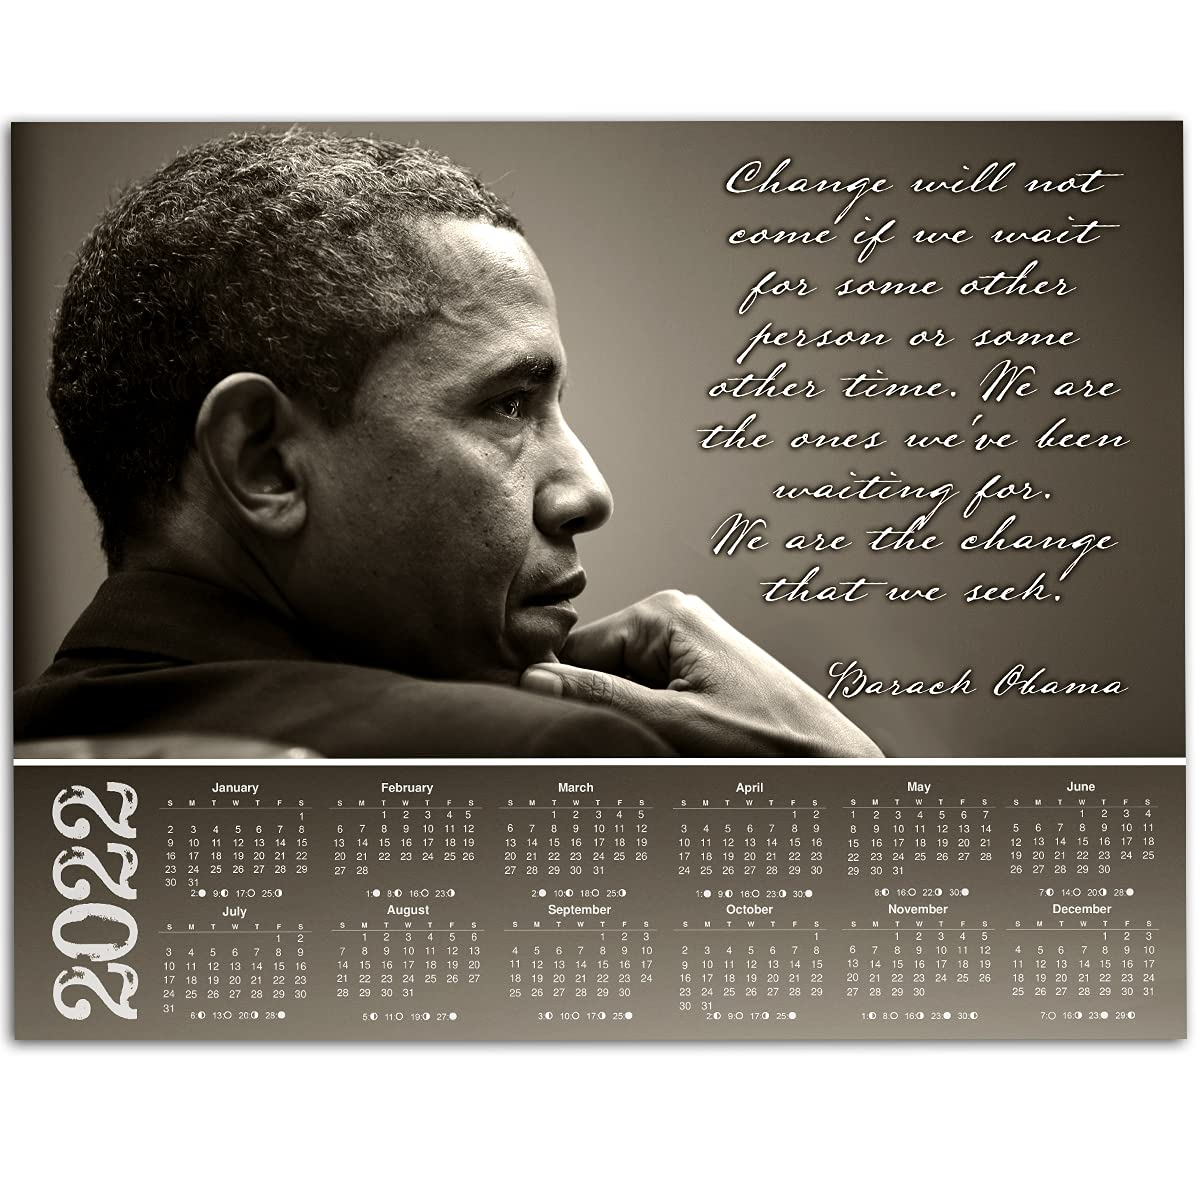 2022 Calendar - Don't miss the campaign Barack Obama We Directly managed store Are Seek 11x14 Change The U